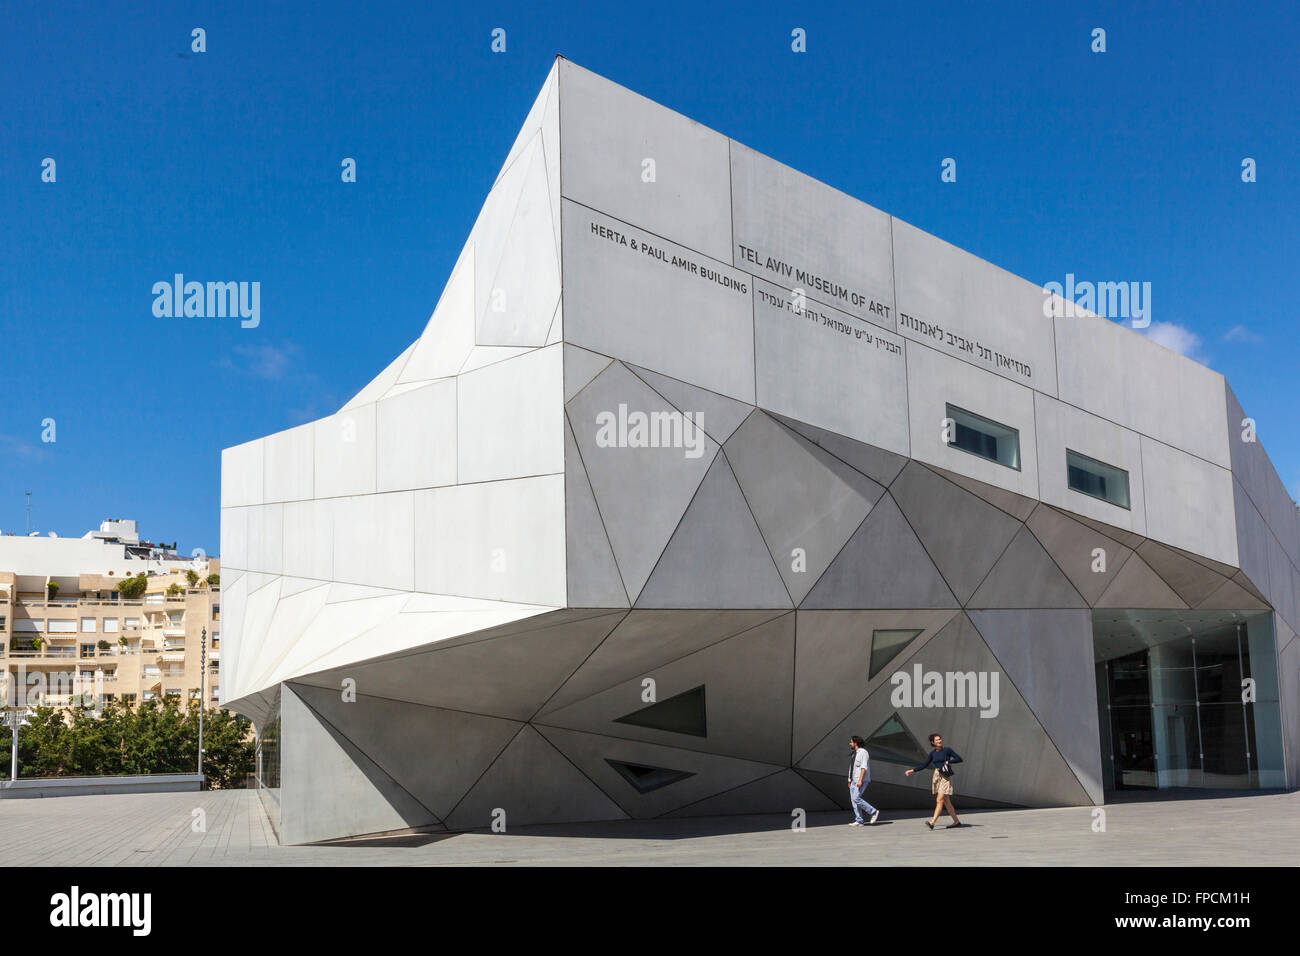 A view of the Tel Aviv Museum of Art from the outside. - Stock Image